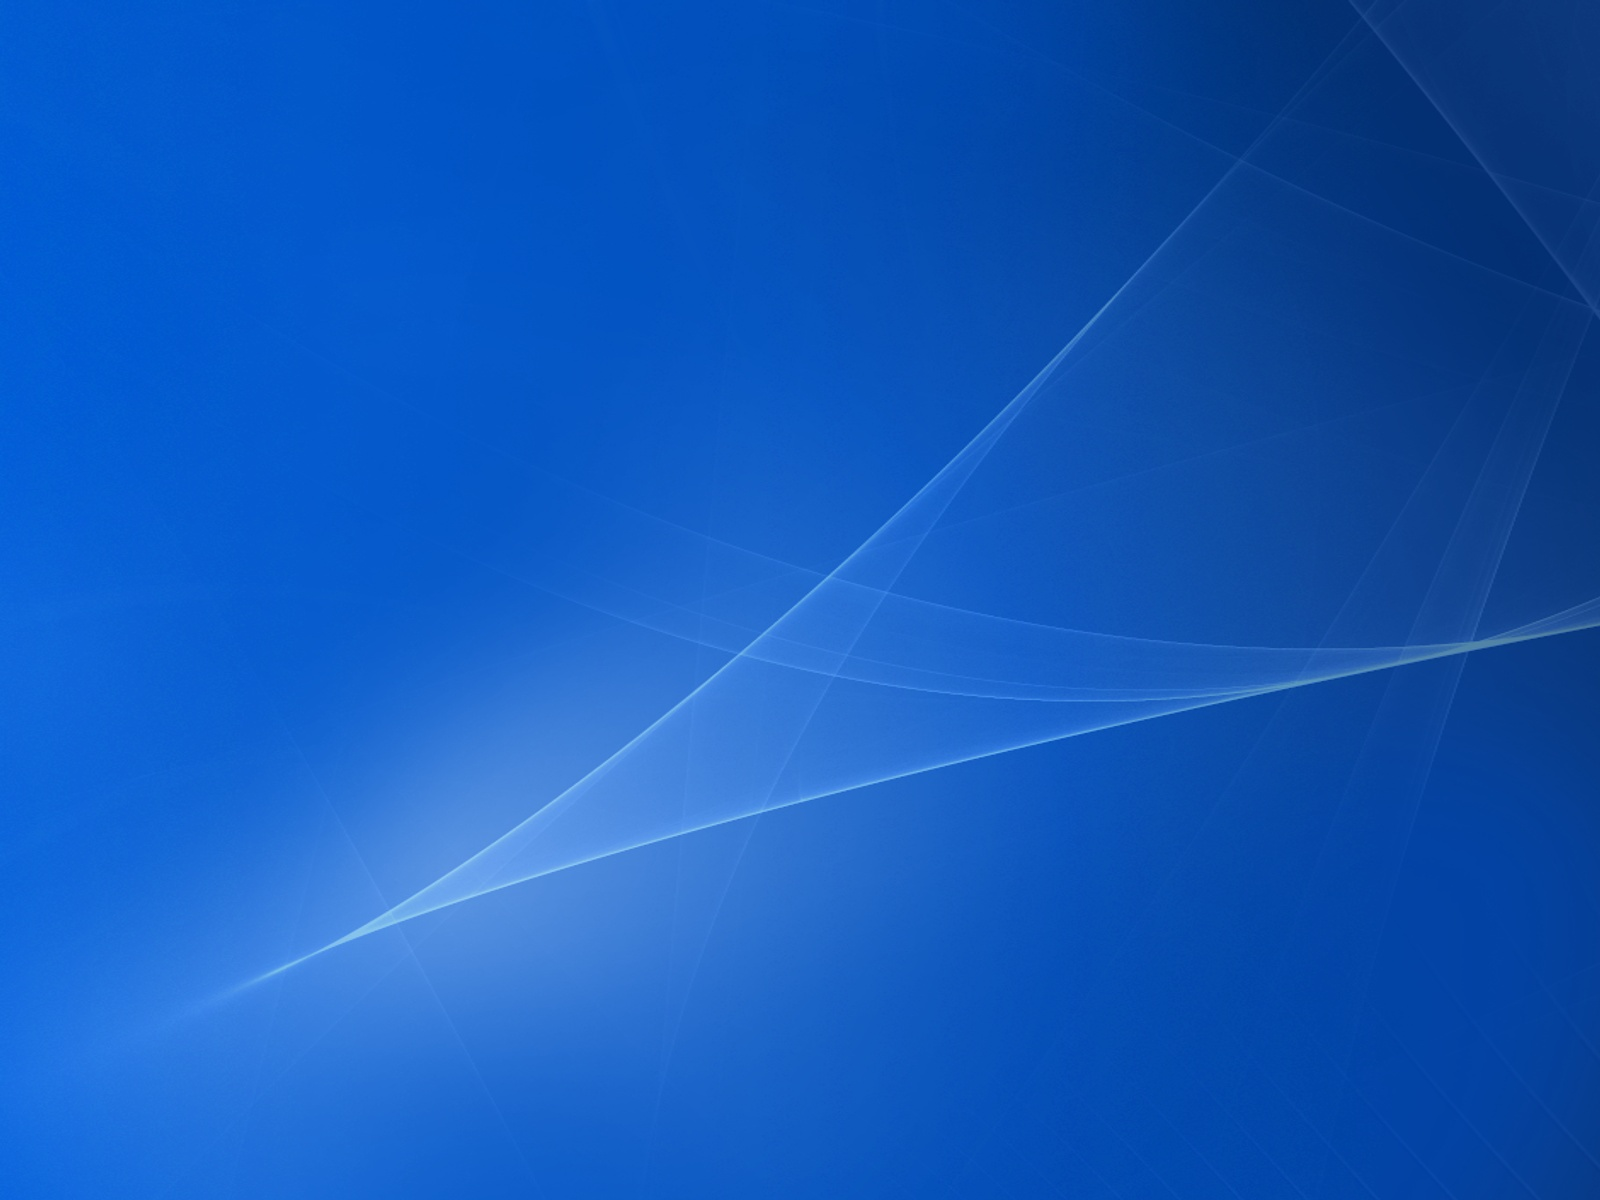 Abstract Desktop Backgrounds HD Wallpapers Art Images blue 1600x1200